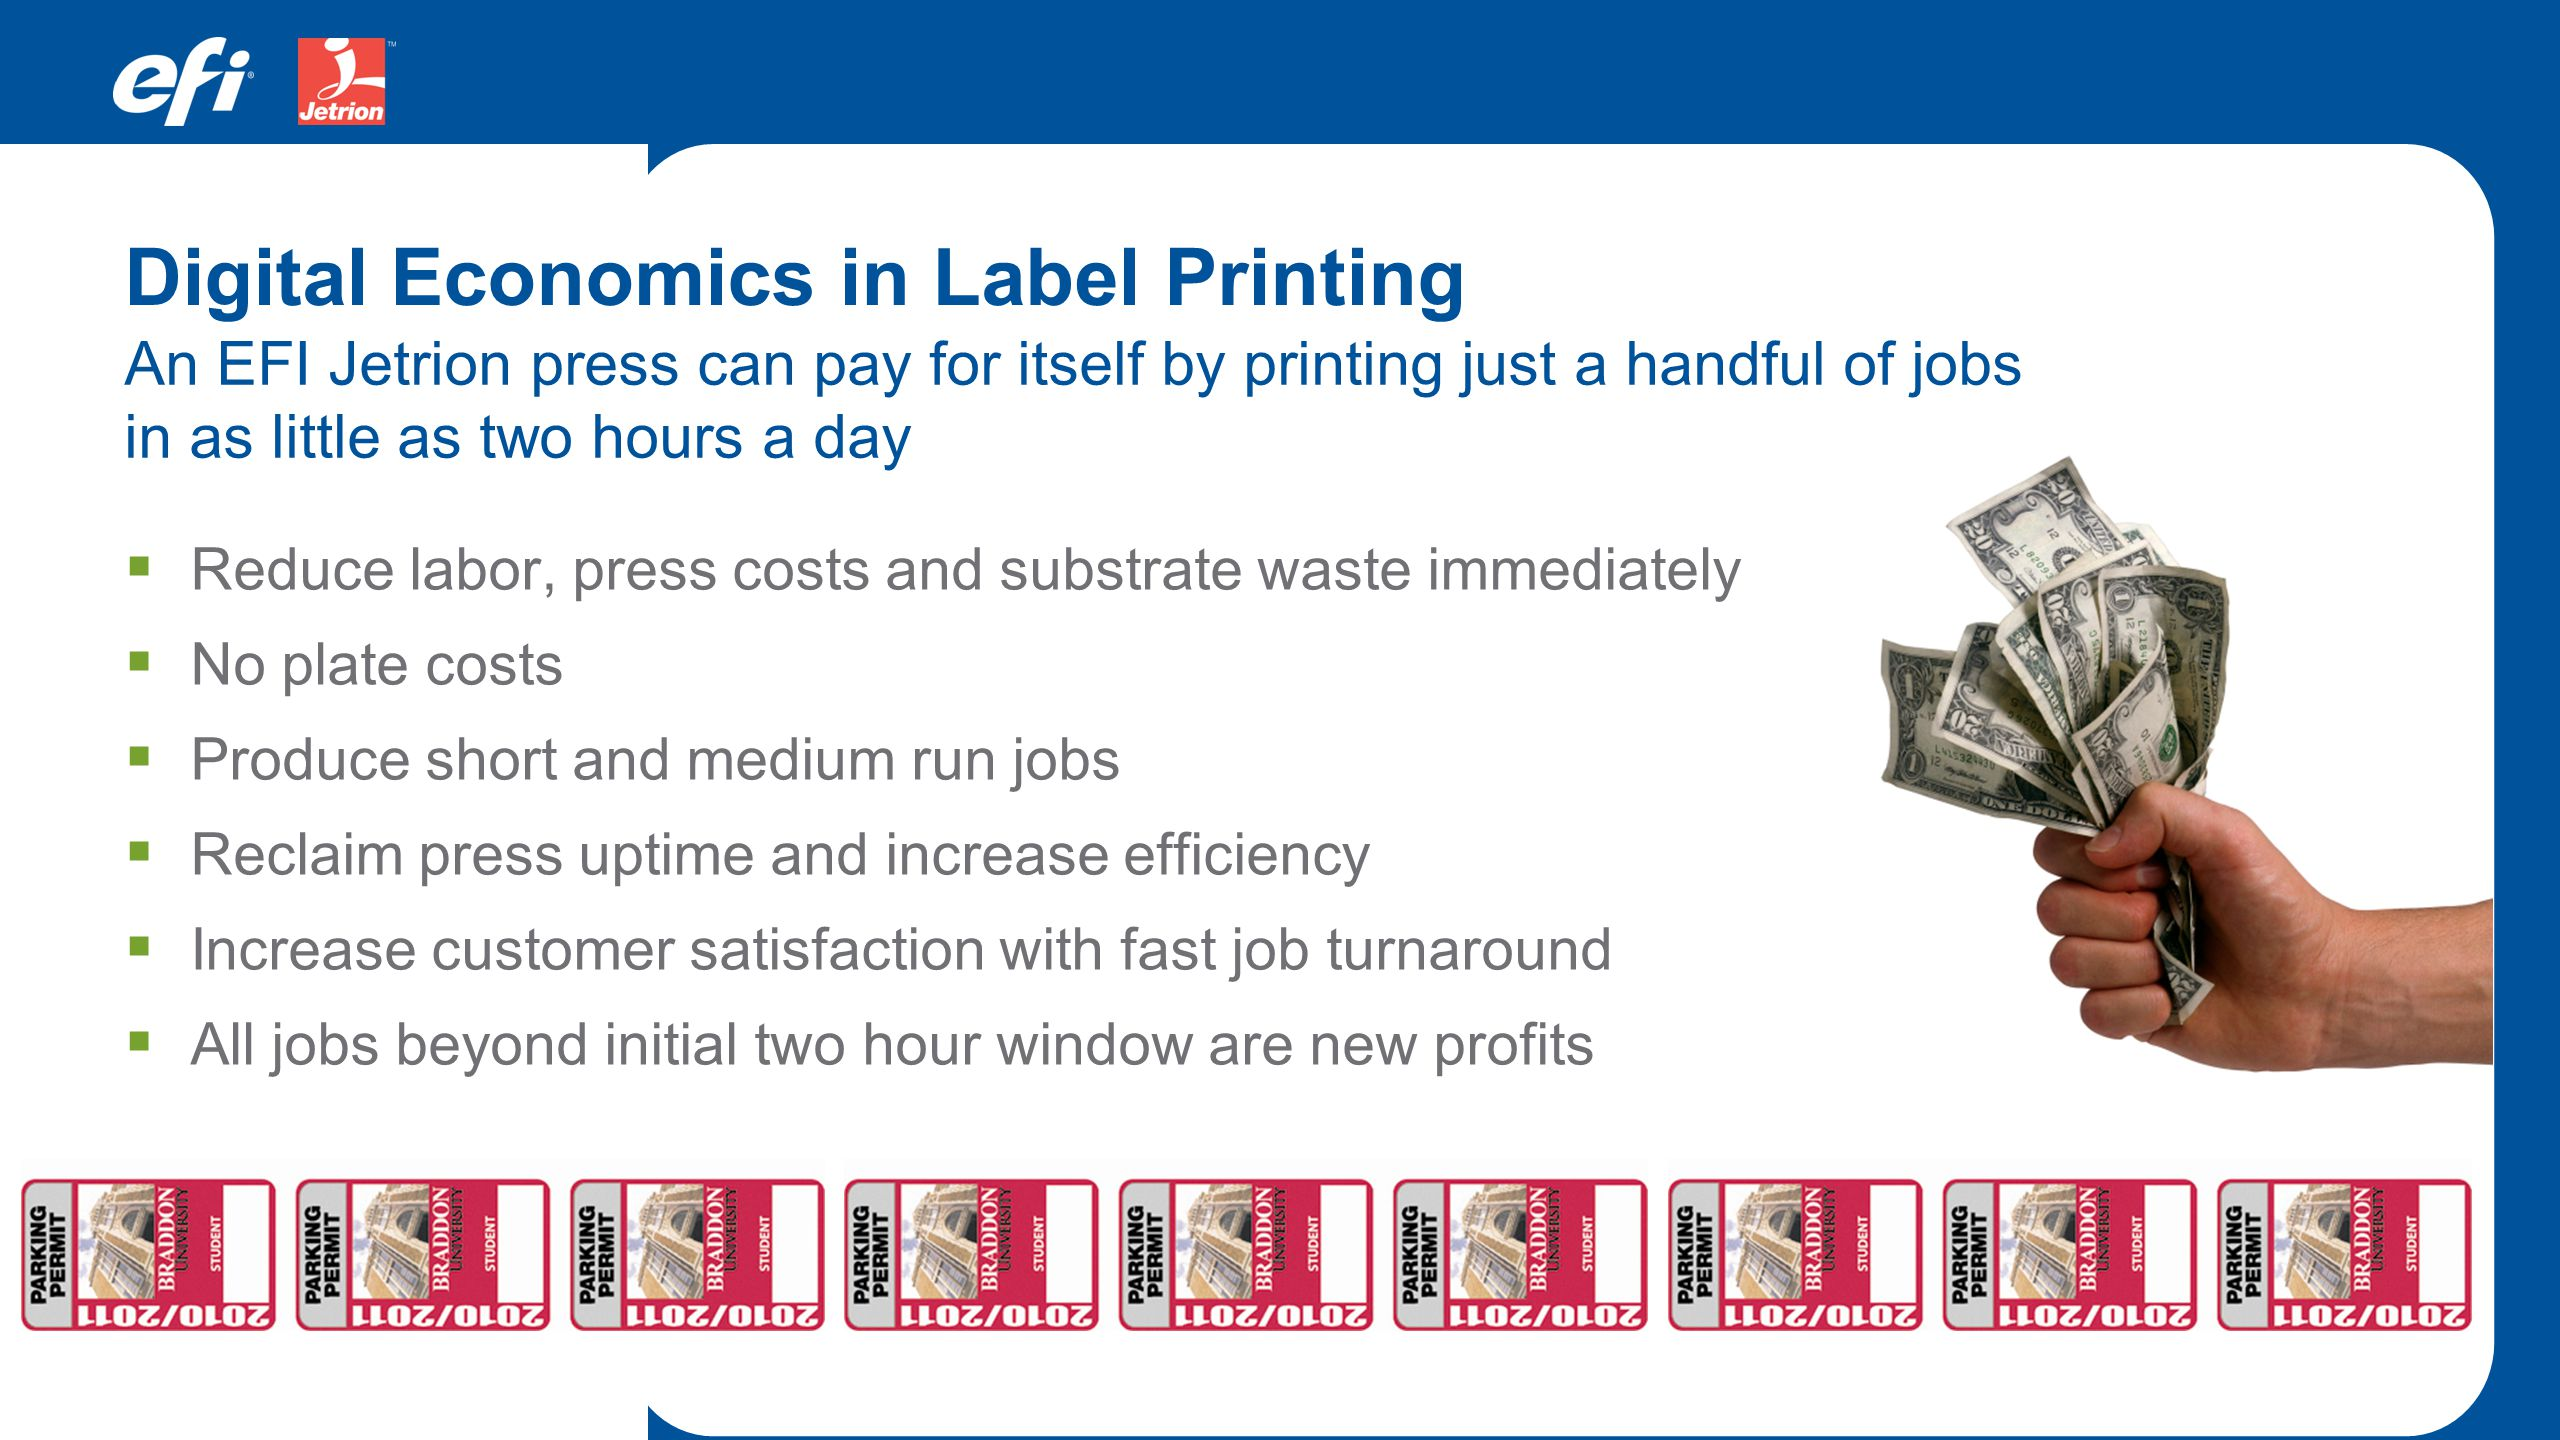 Digital Economics in Label Printing